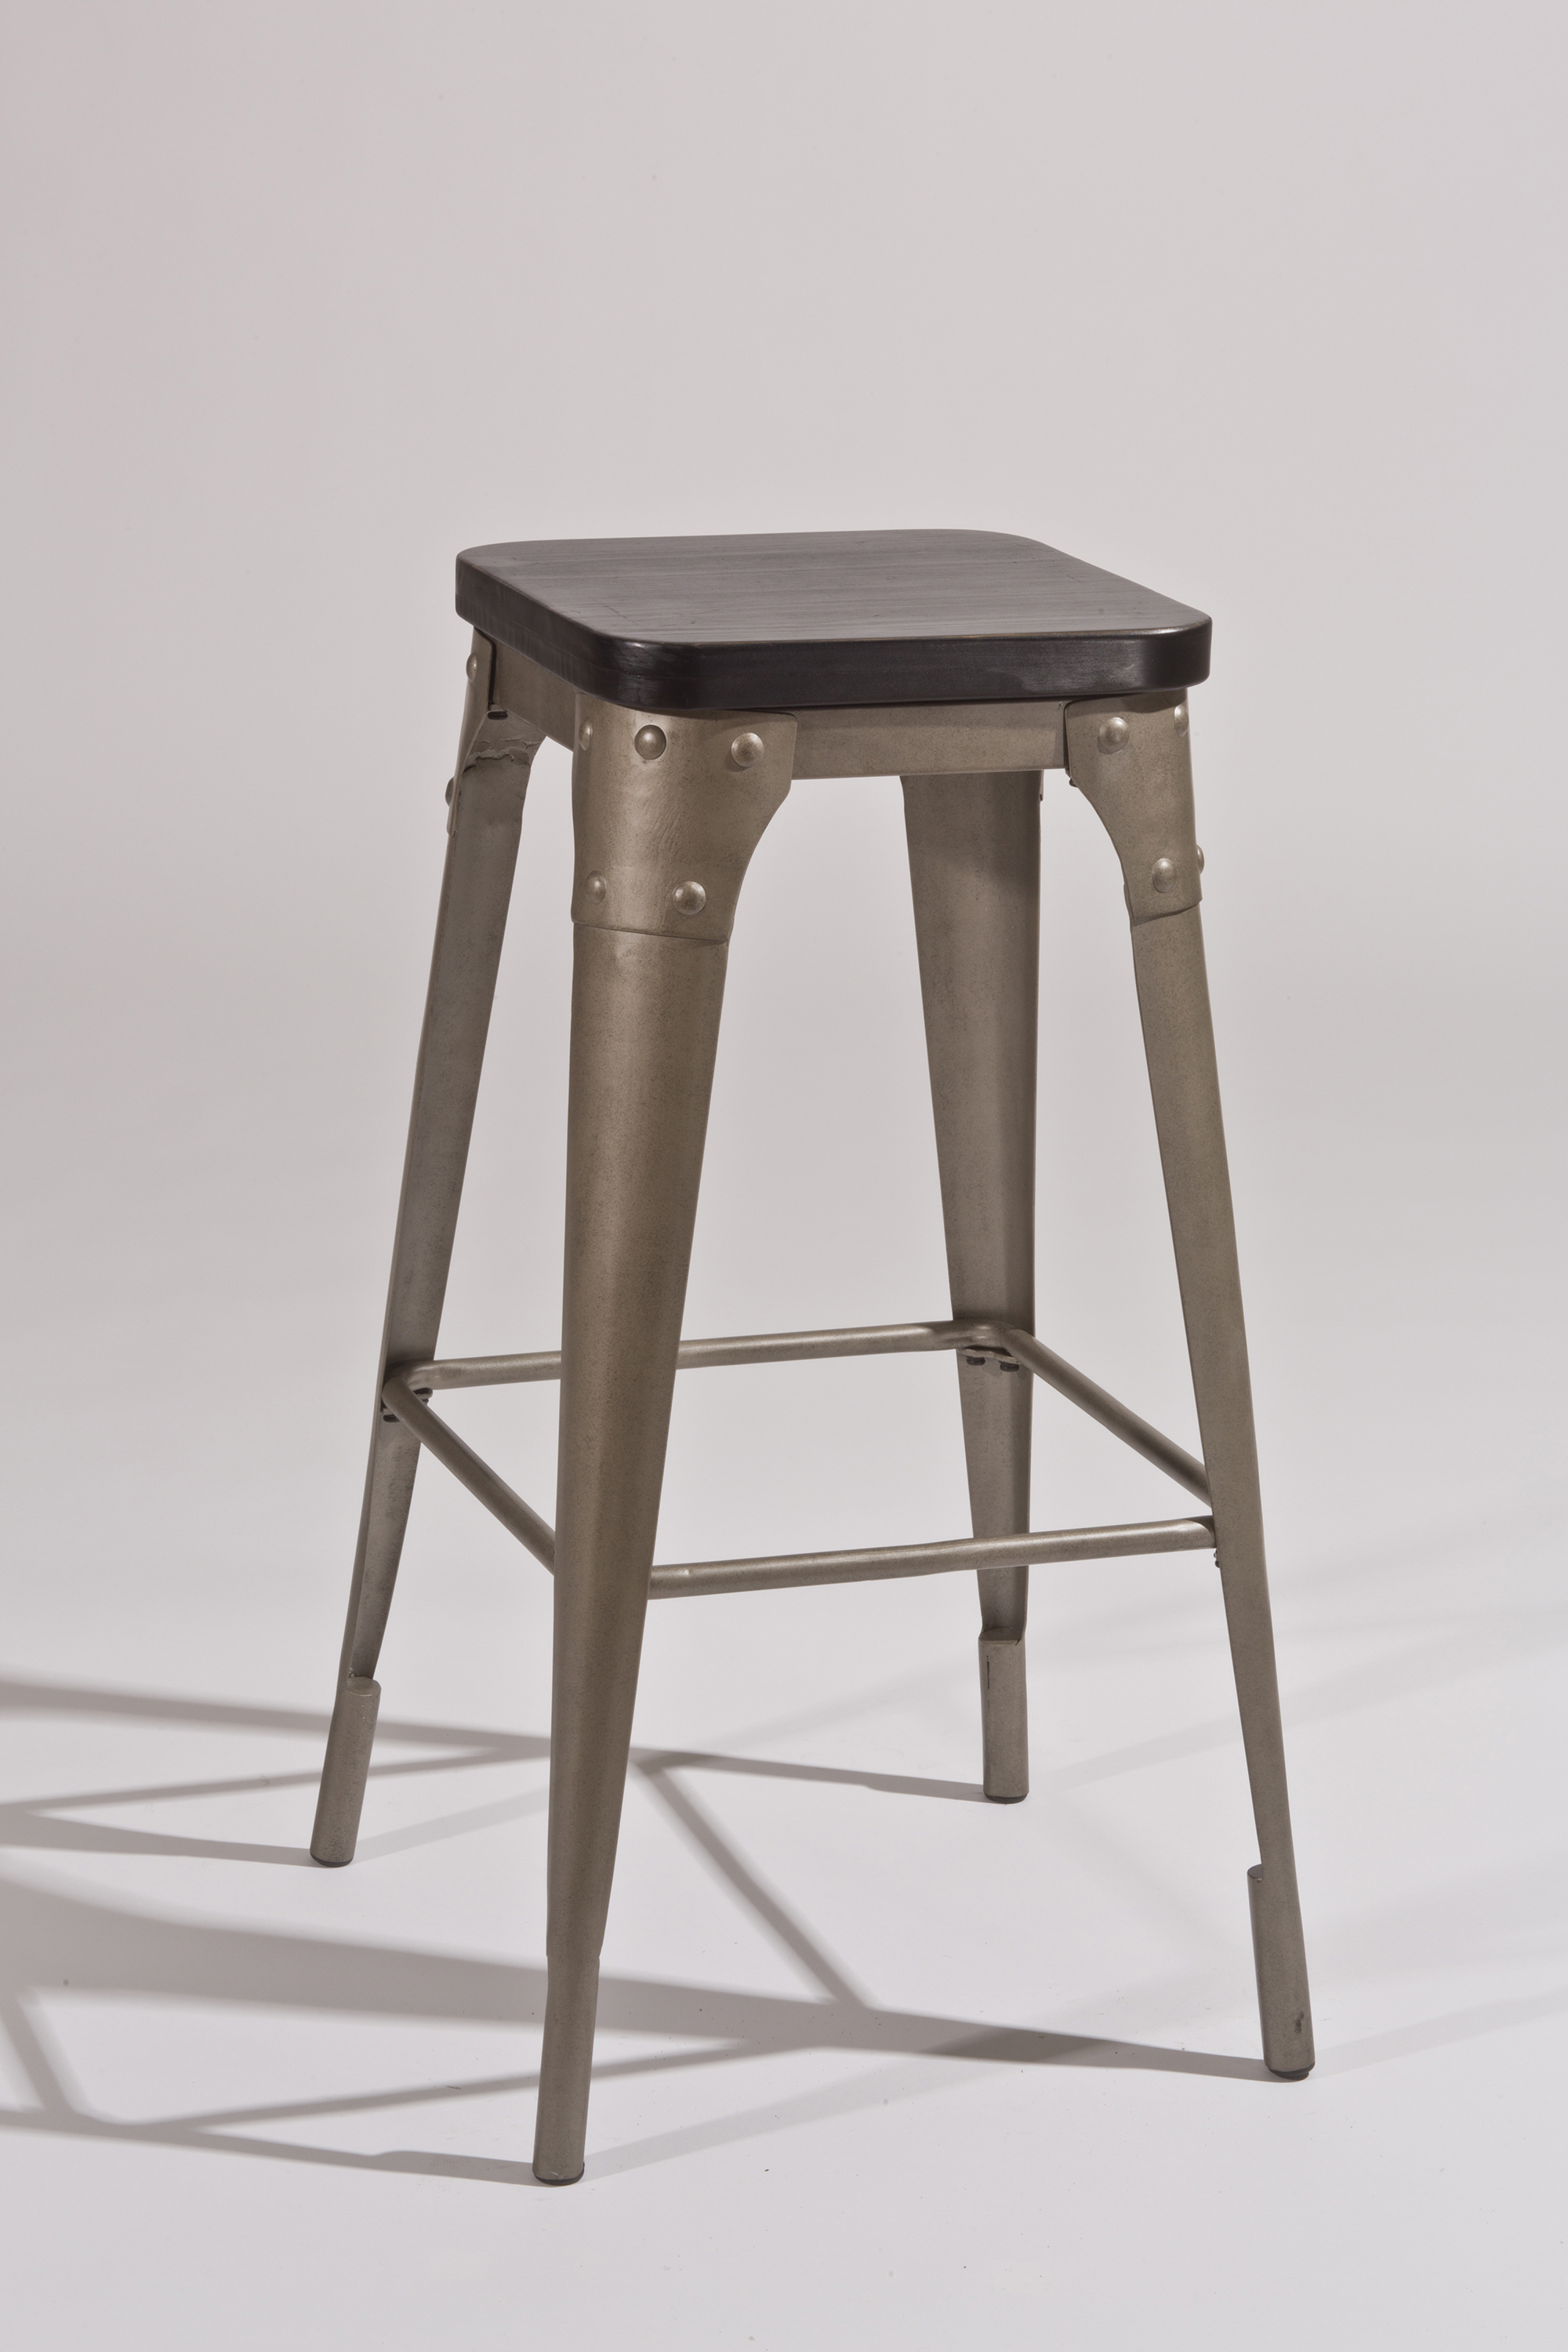 backless counter stools hillsdale backless bar stools metal backless counter stool 1419